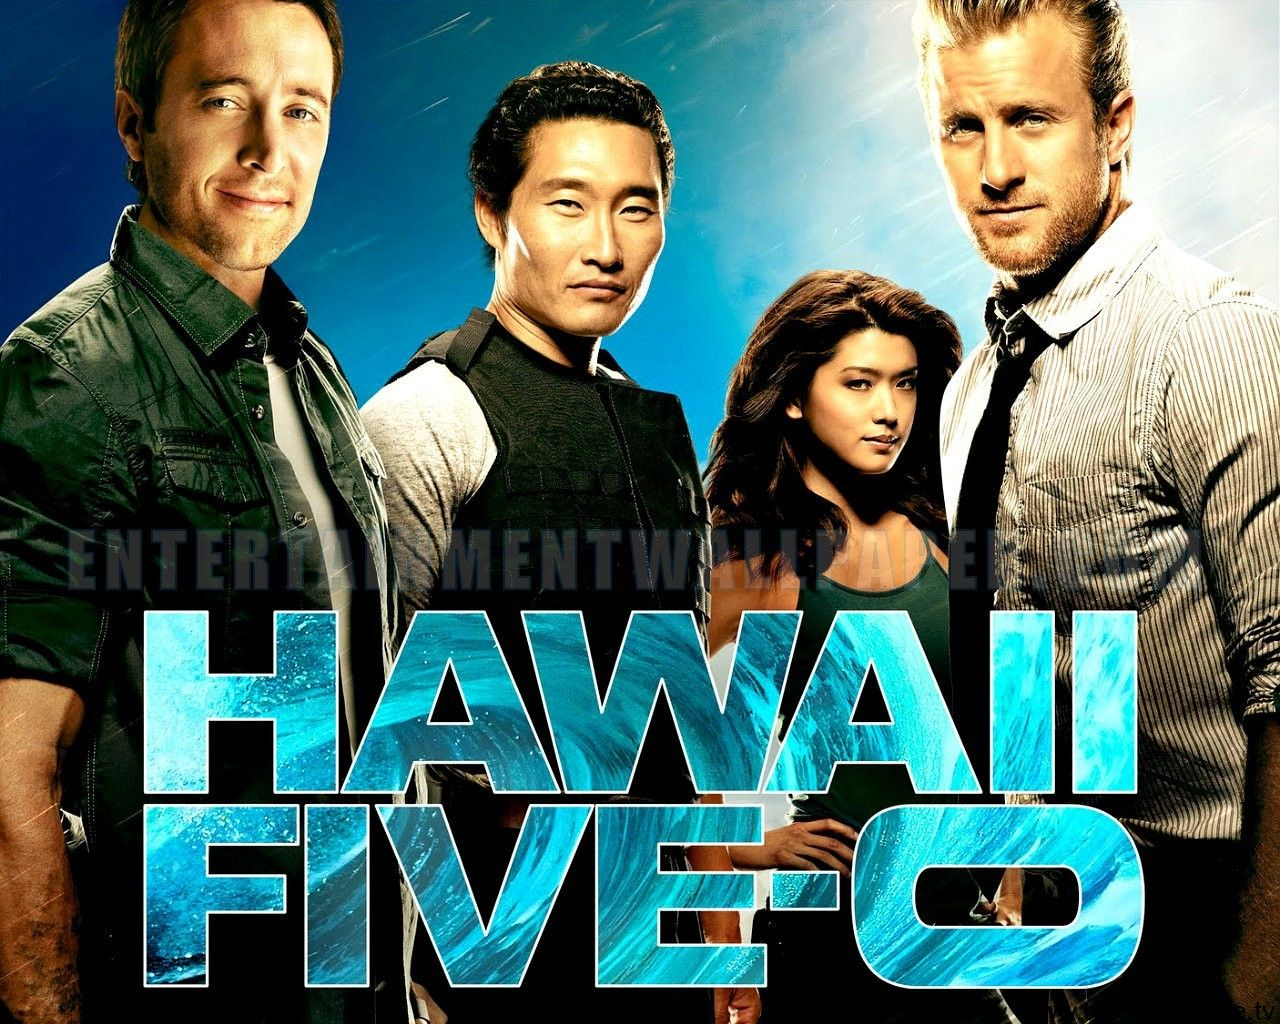 Pin by tvseriesonline on tvseriesonline | Hawaii five o